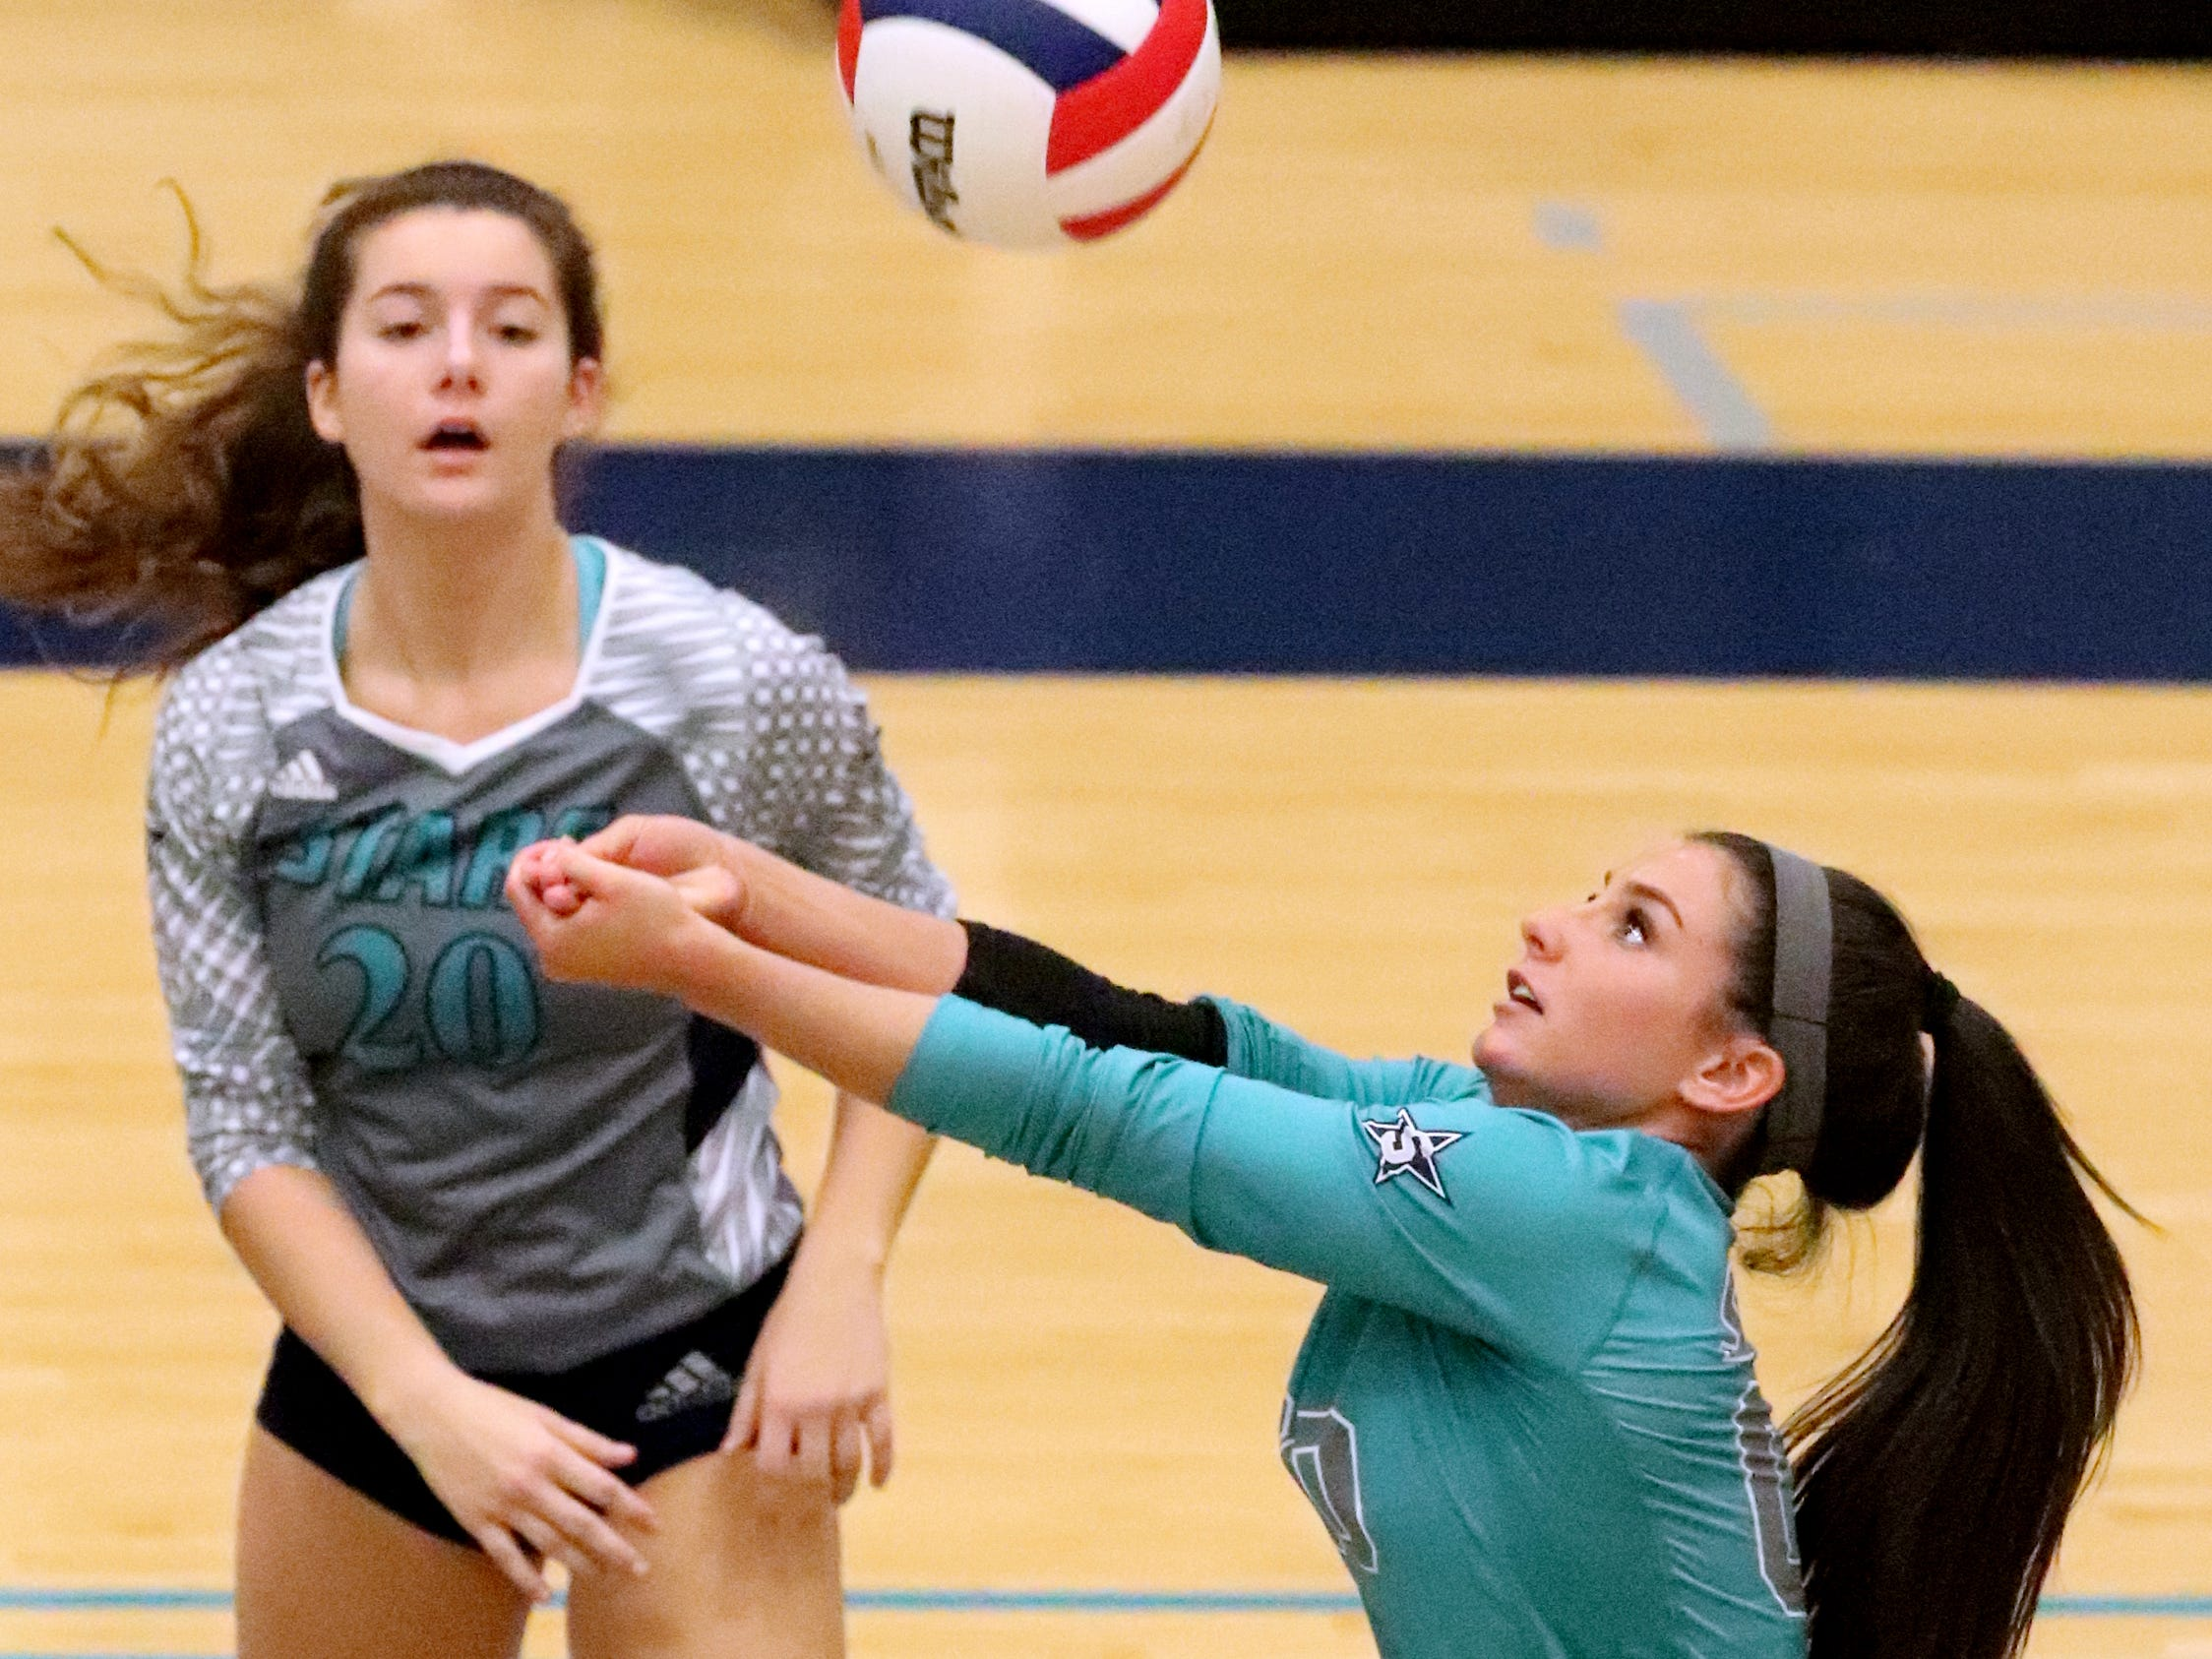 Siegel's Julia Poarch (00) bumps the ball as Zoe Delk (20) watches in the background during the Class AAA sectional against Cleveland Thursday, Oct. 11, 2018. Siegel beat Cleveland to advance to the State Championship tournament.